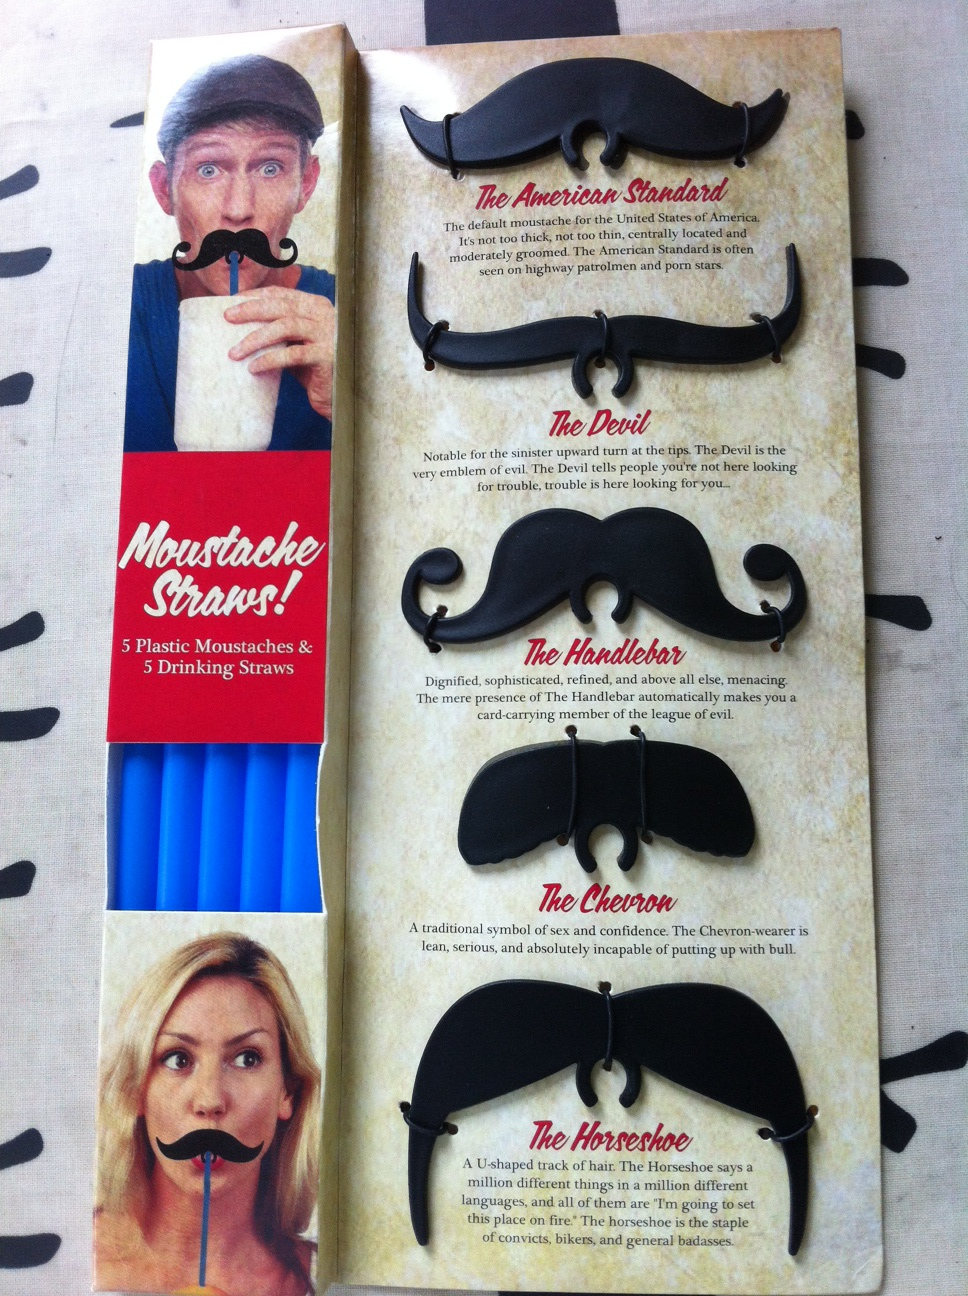 My 'Pinged' Moustache Straws & 30% off Parcel Genie for World of Kitsch Readers